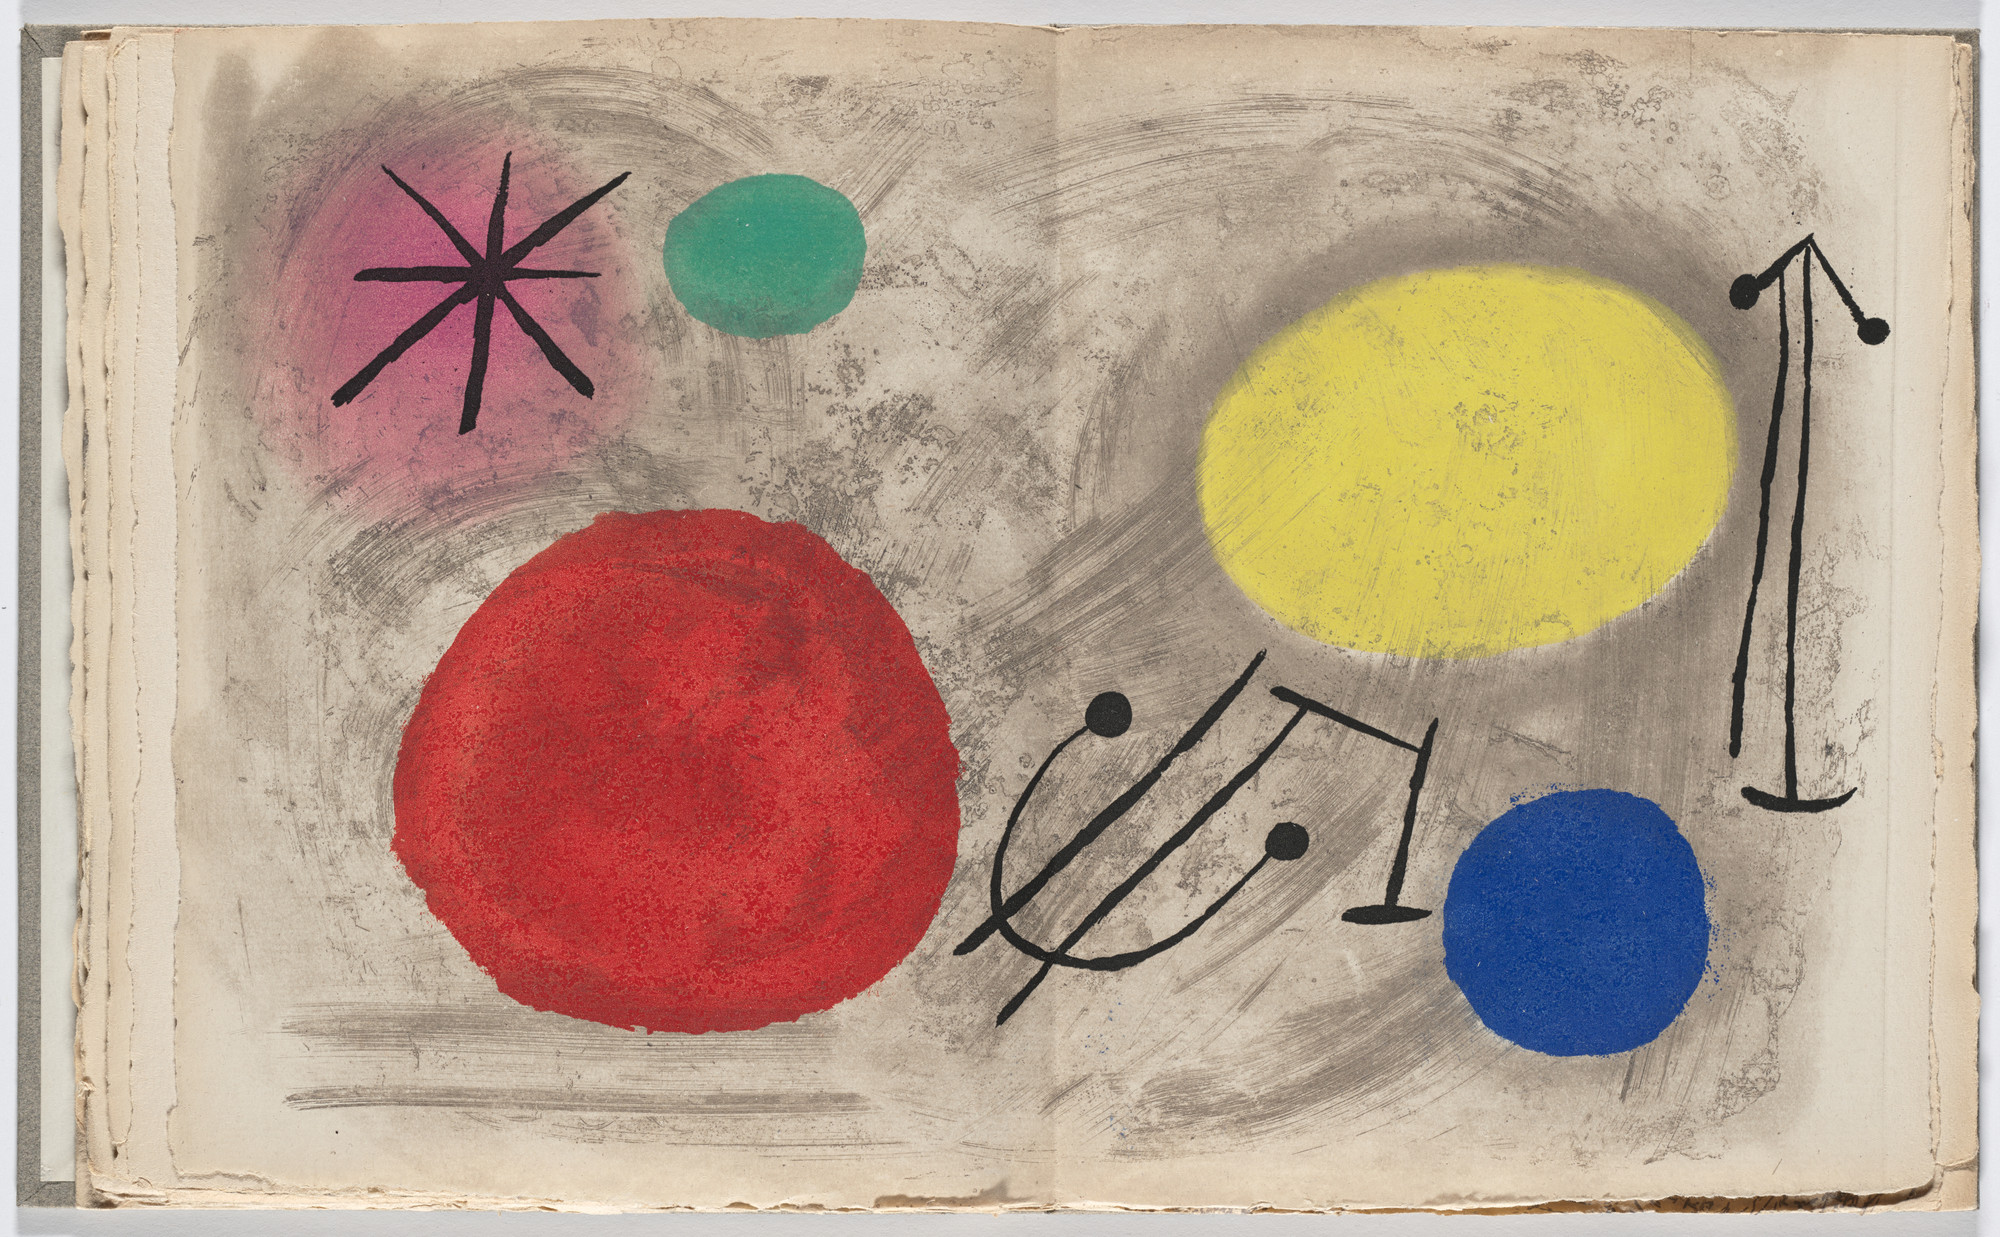 Joan Miró. Double page plate (pages 38 and 39) from Bagatelles végétales. 1956